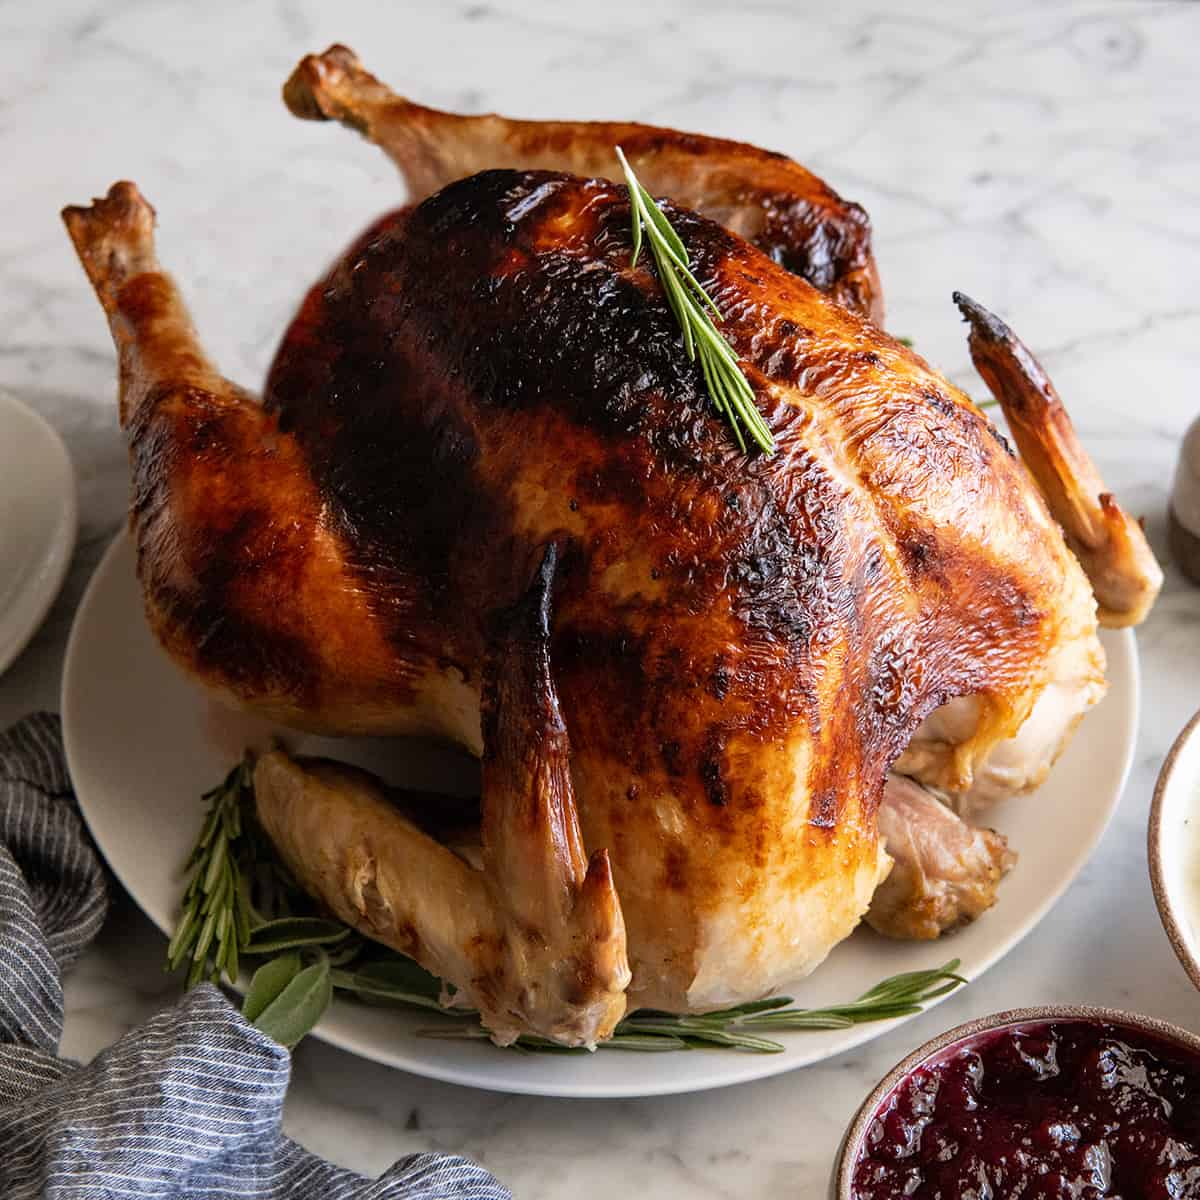 front view of a roast turkey on a serving plate